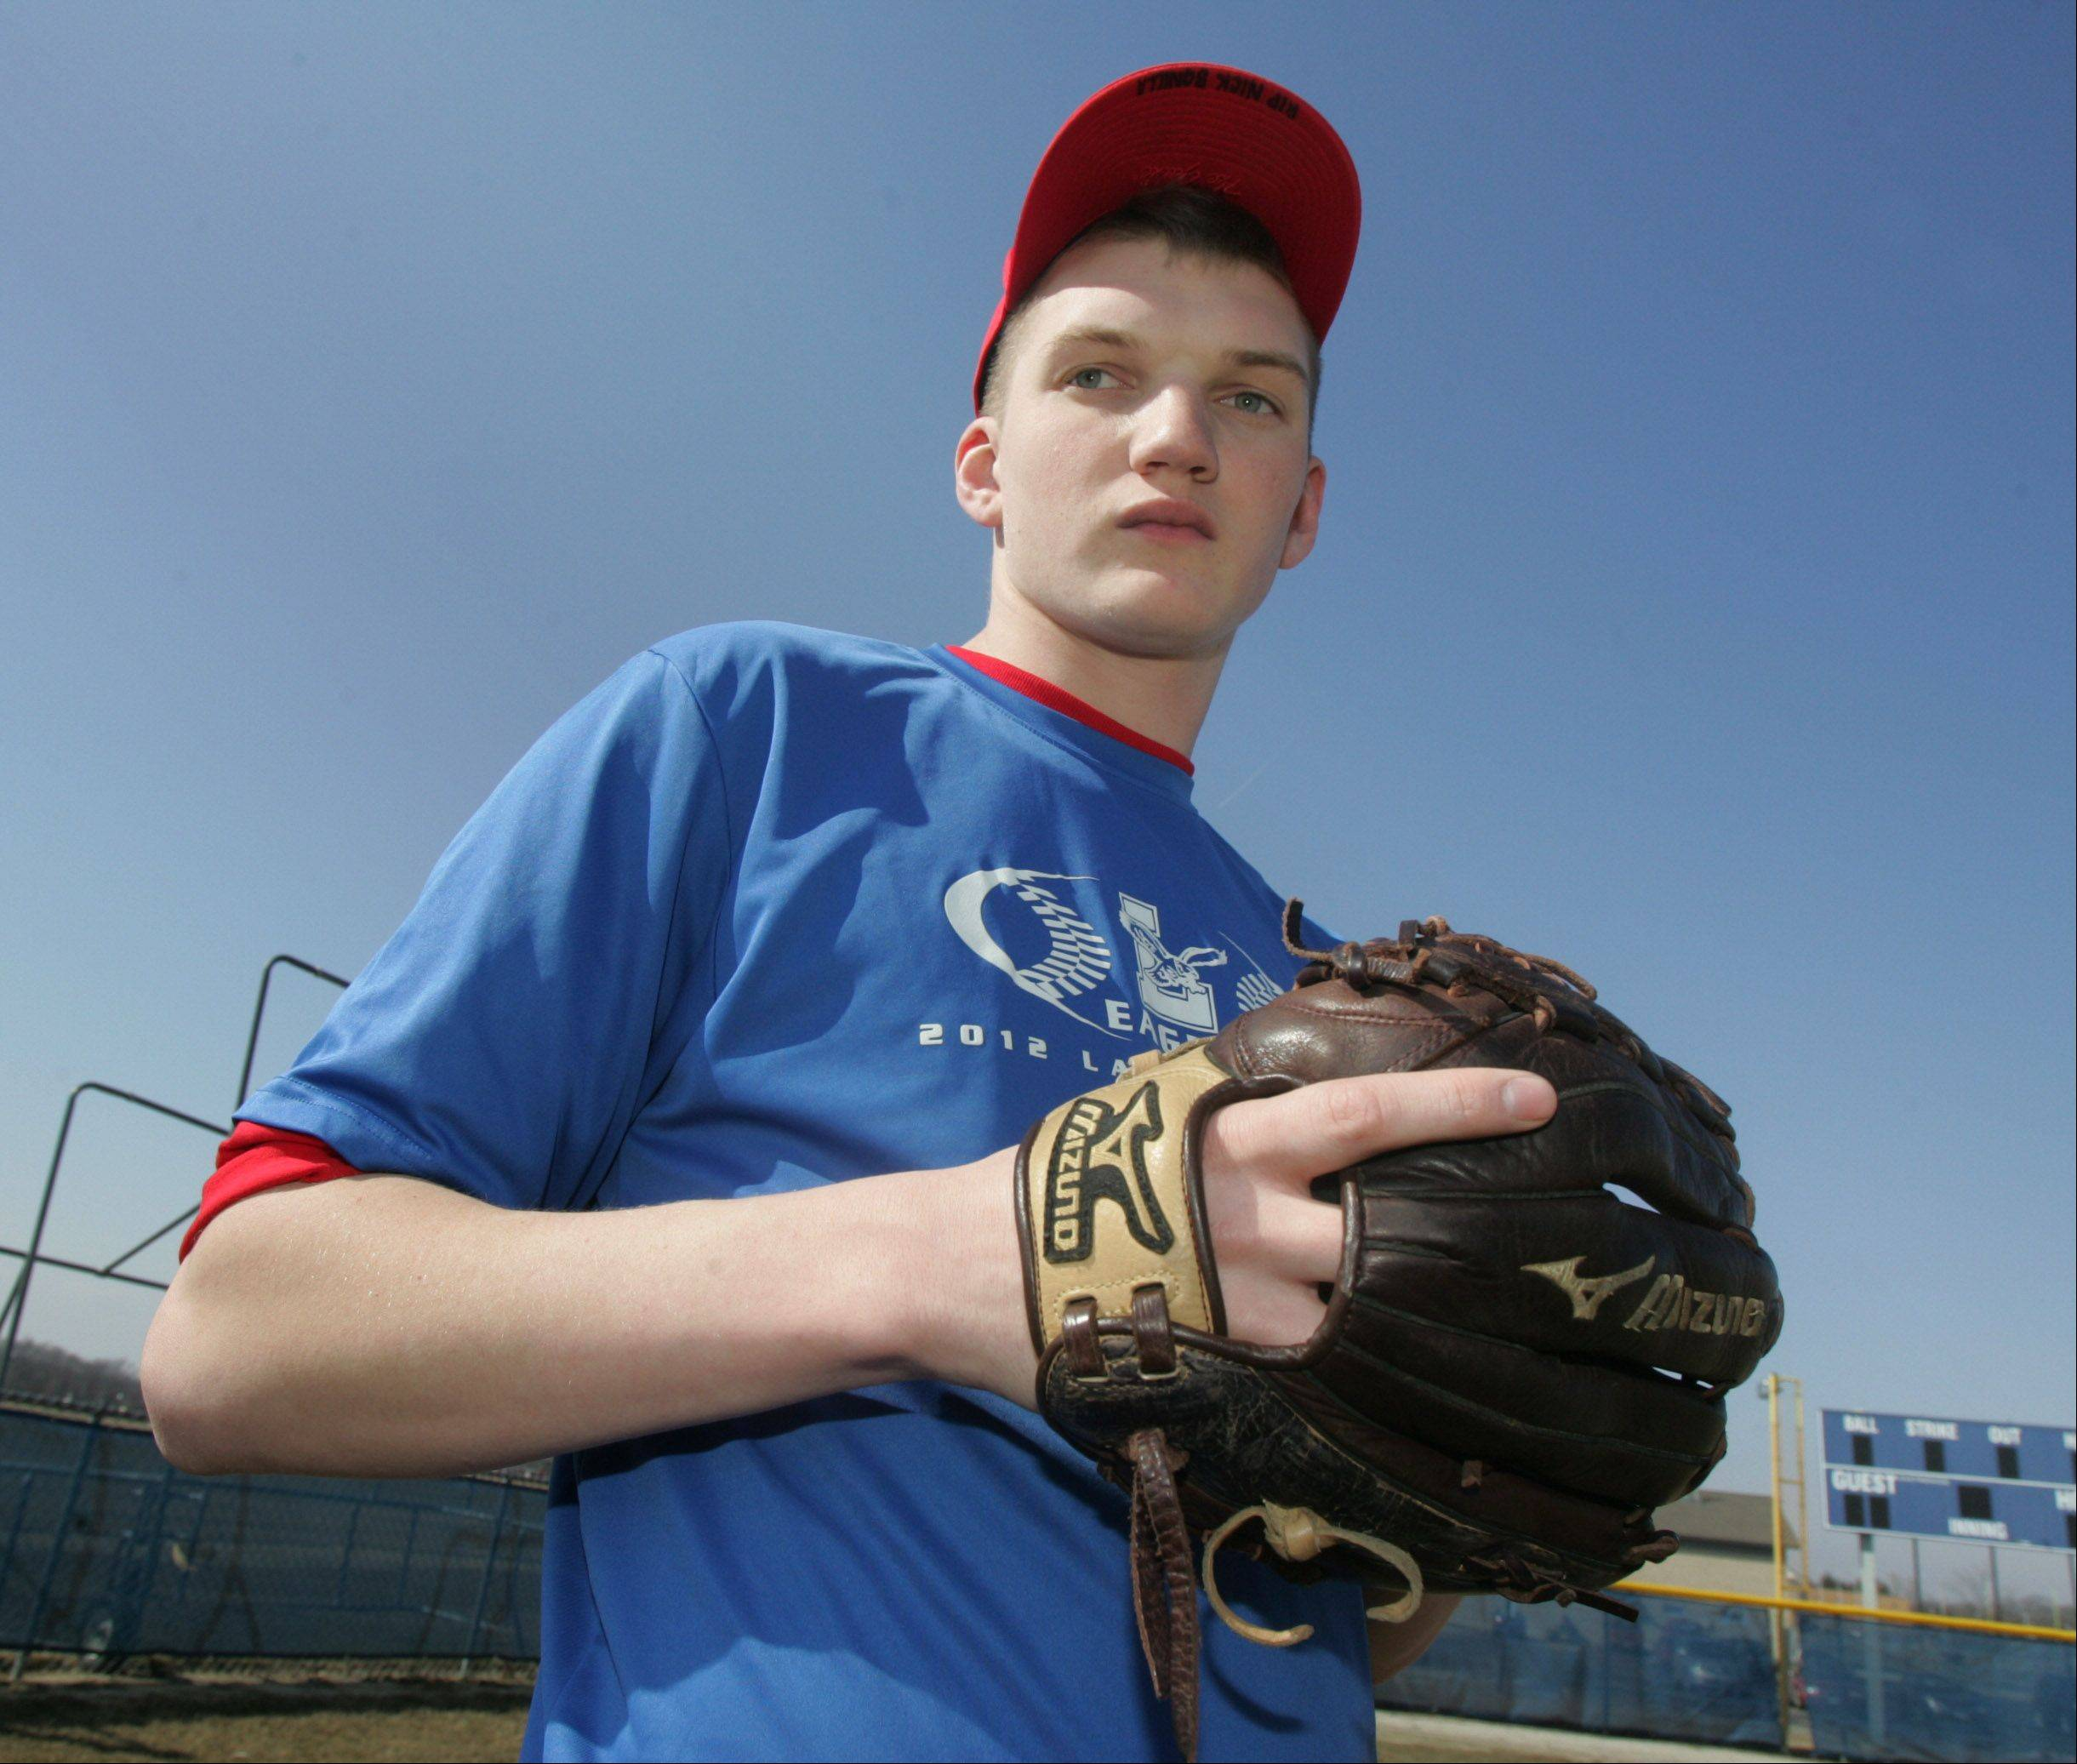 Lakes' Justin Demand is a 6-foot-5 left-hander who is trying to fully tap his considerable pitching potential.